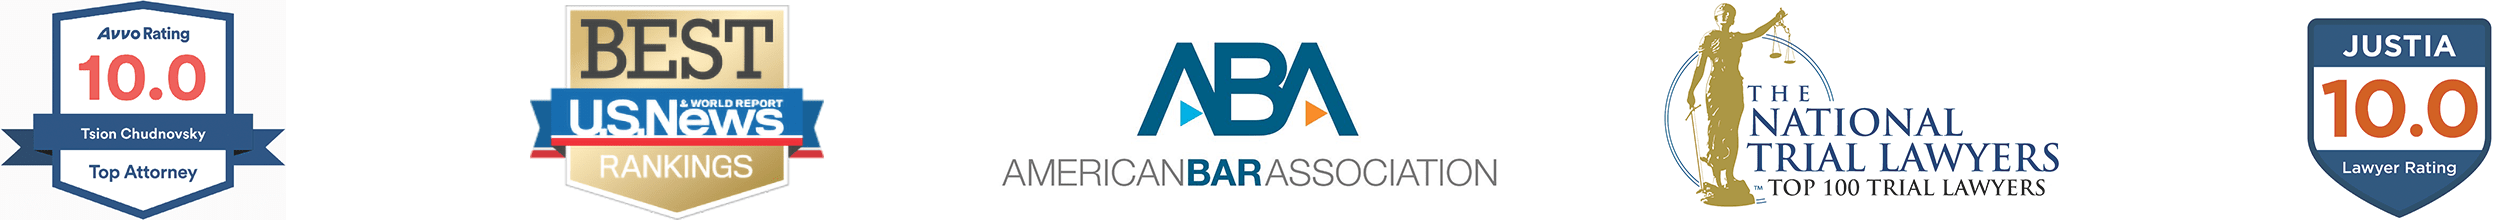 """Newport Beach Criminal Defense Attorney and DUI Lawyer Awards: Avvo 10.0 Rating, The National Trial Lawyers """"Top 100 Trial Lawyers"""" Award, Justia 10.0 Rating."""